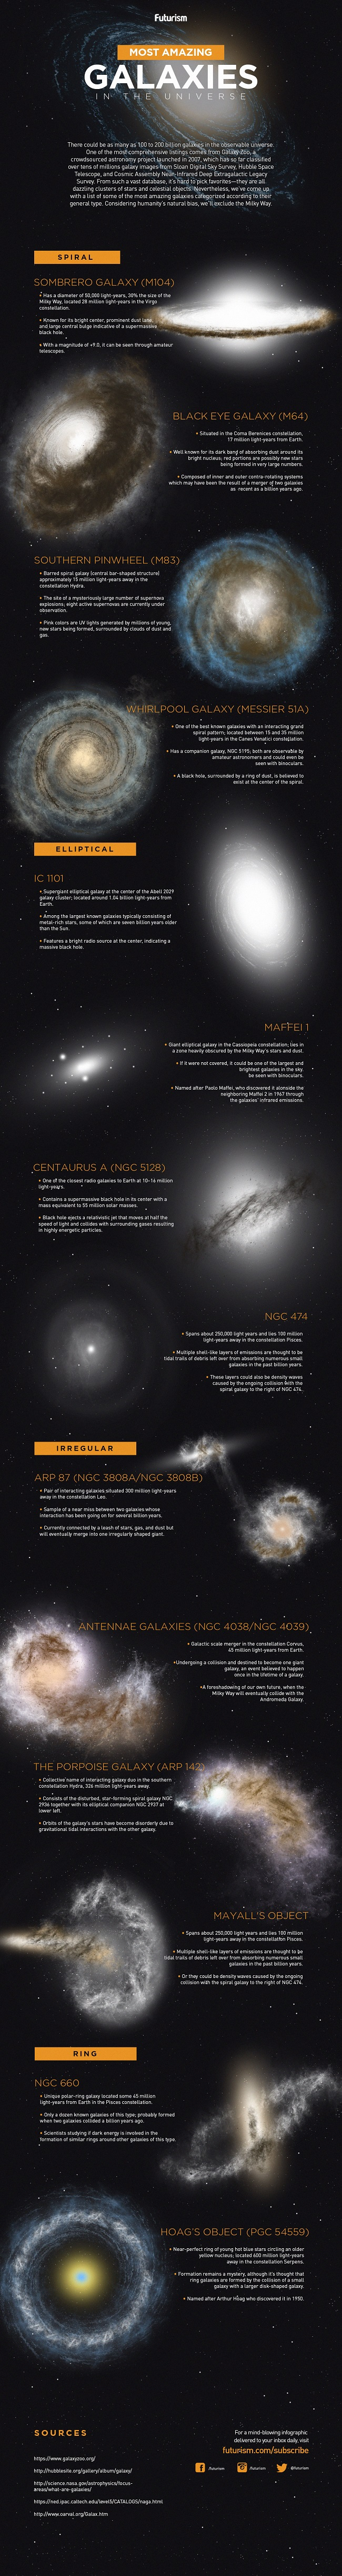 Galaxies infographic